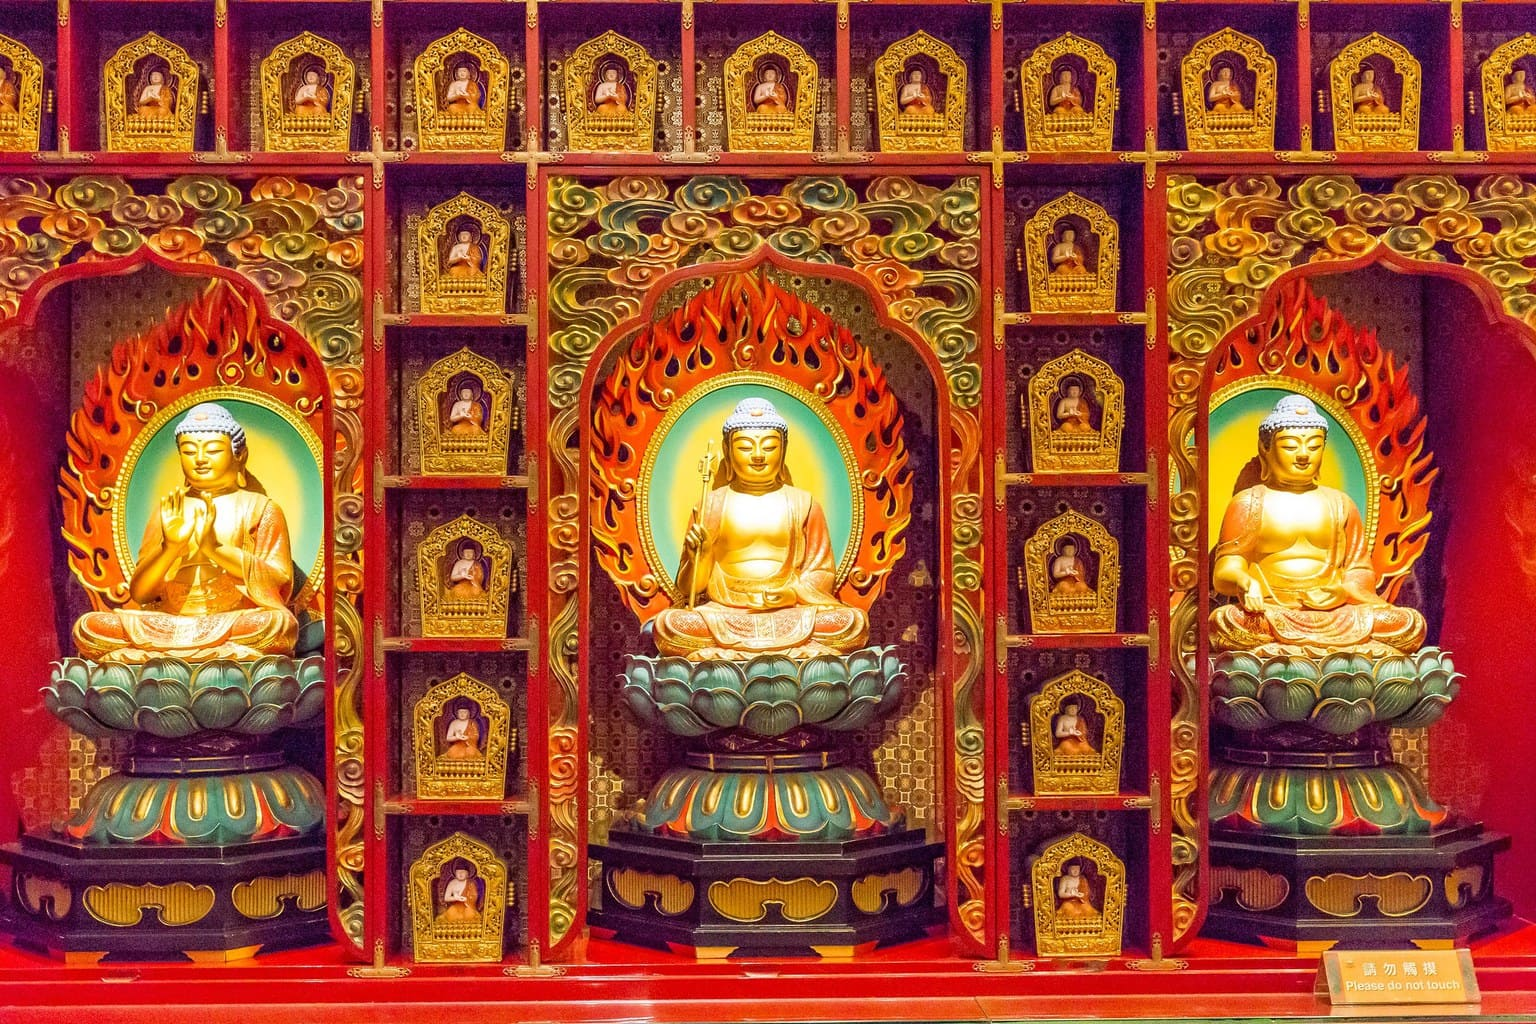 Buddhist statues in the Buddha Tooth Relic Temple